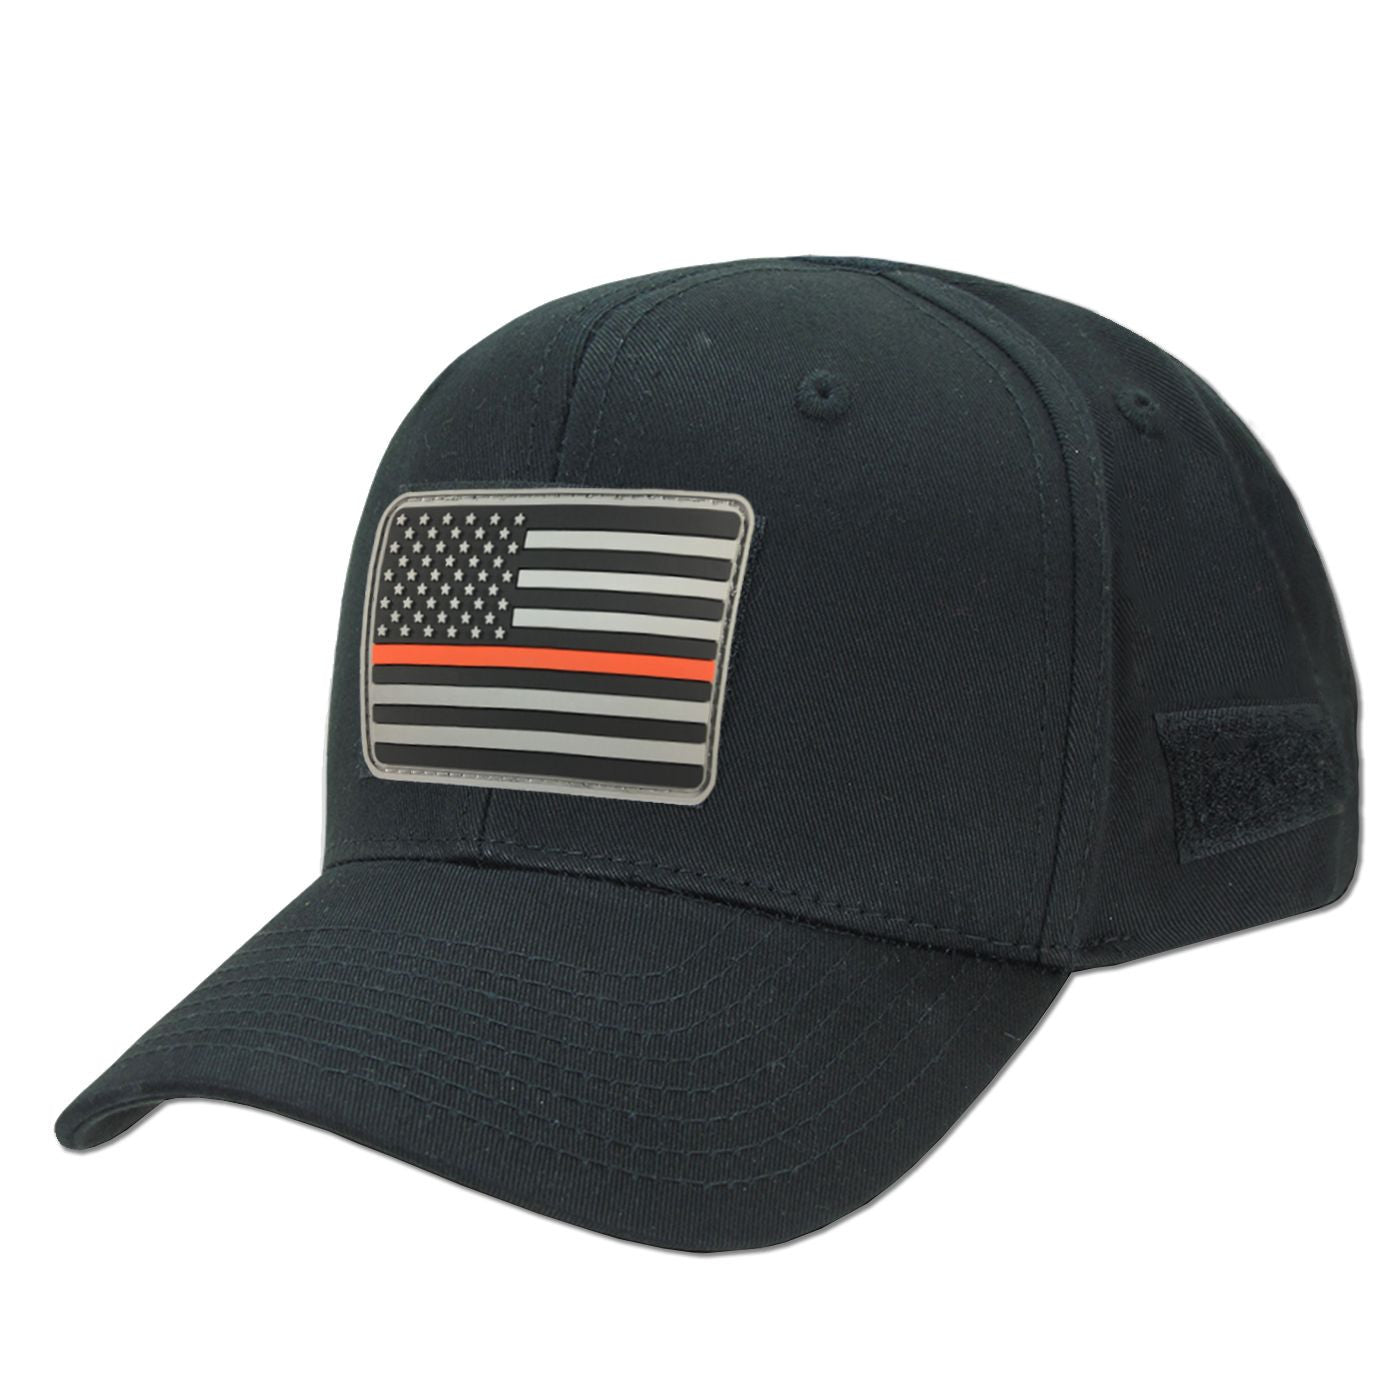 Black Operator s Hat and TRL Morale Patch - Thin Blue Line USA fd5e6a0b12